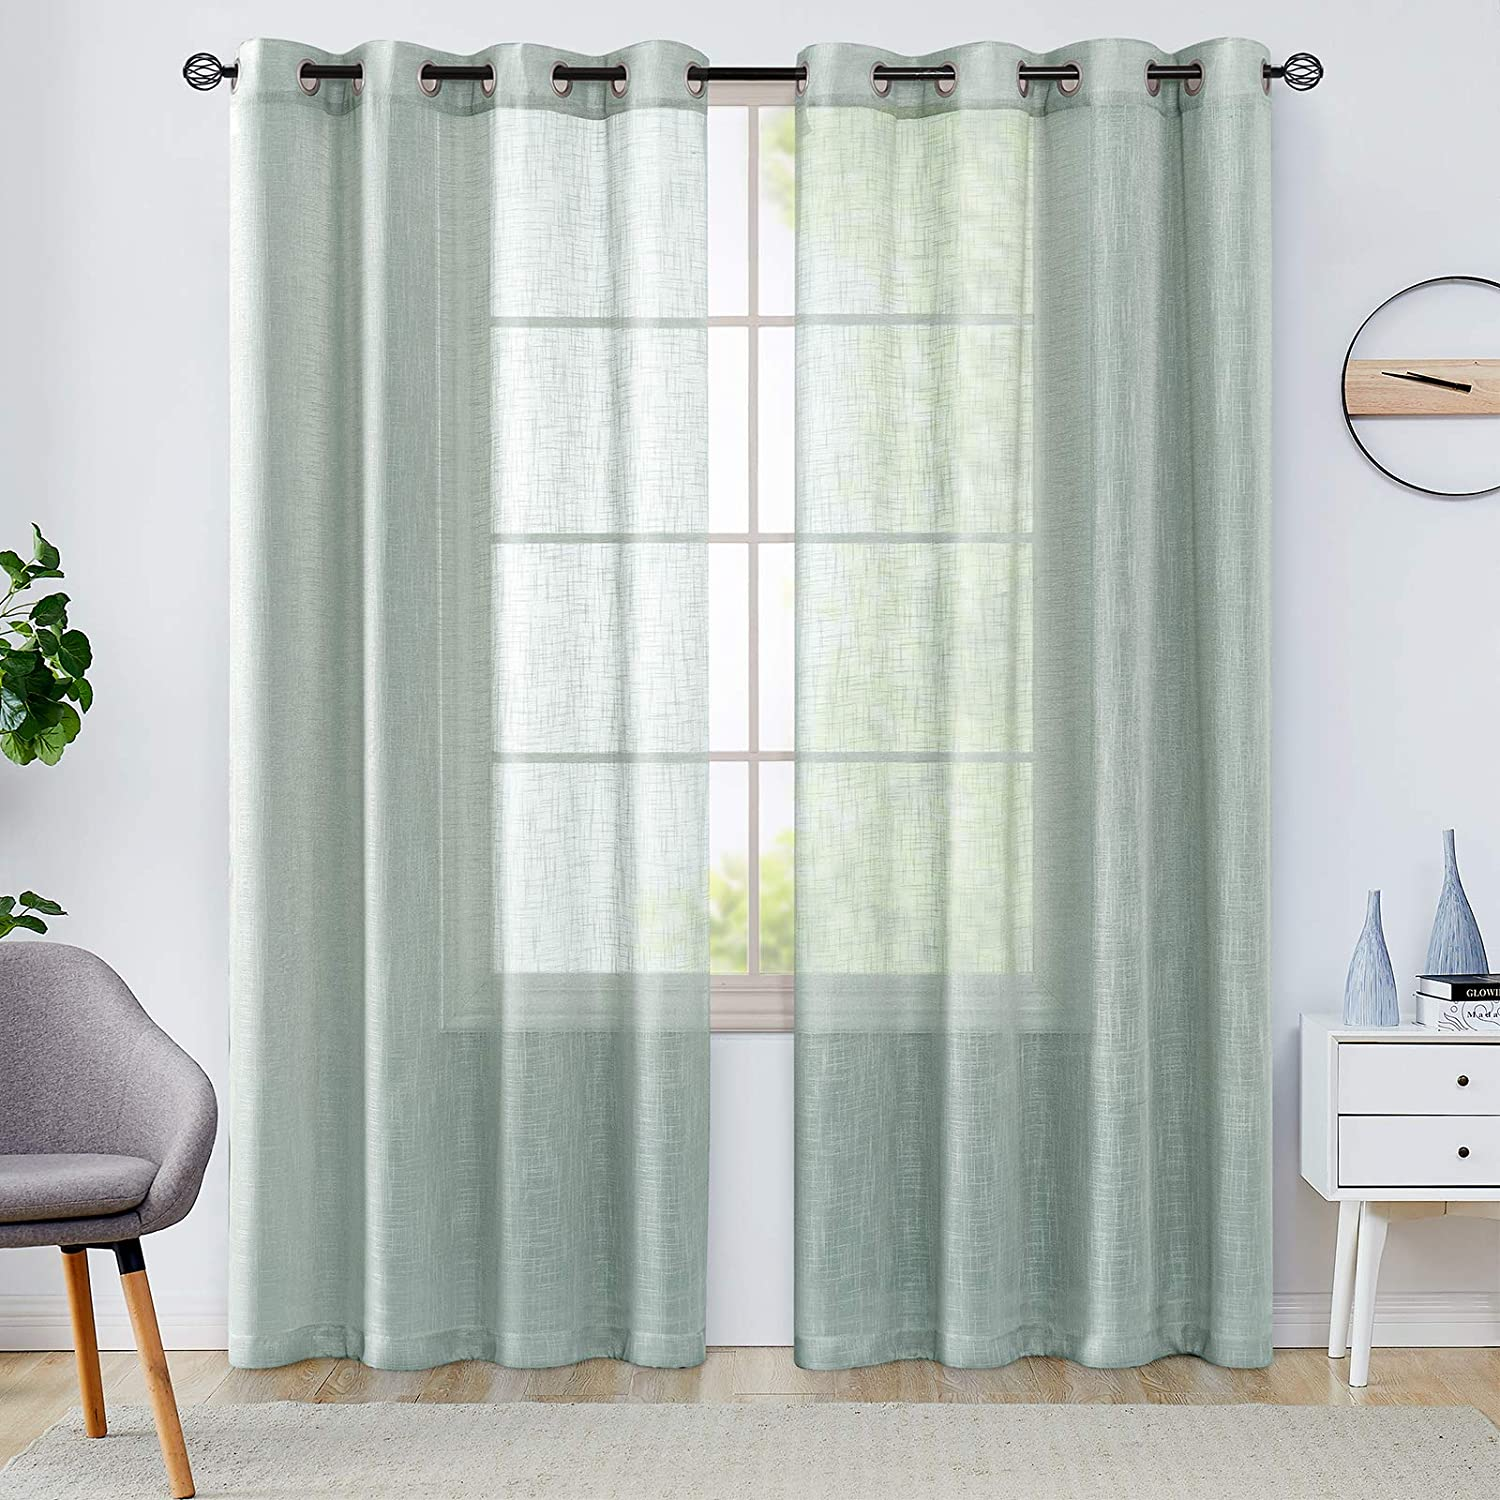 Open Weave Grommet Sheer Curtains for Living Room Slub Decorative Voile  Window Treatment Sets for Bedroom Pack of Two 5 Inch Blue Haze